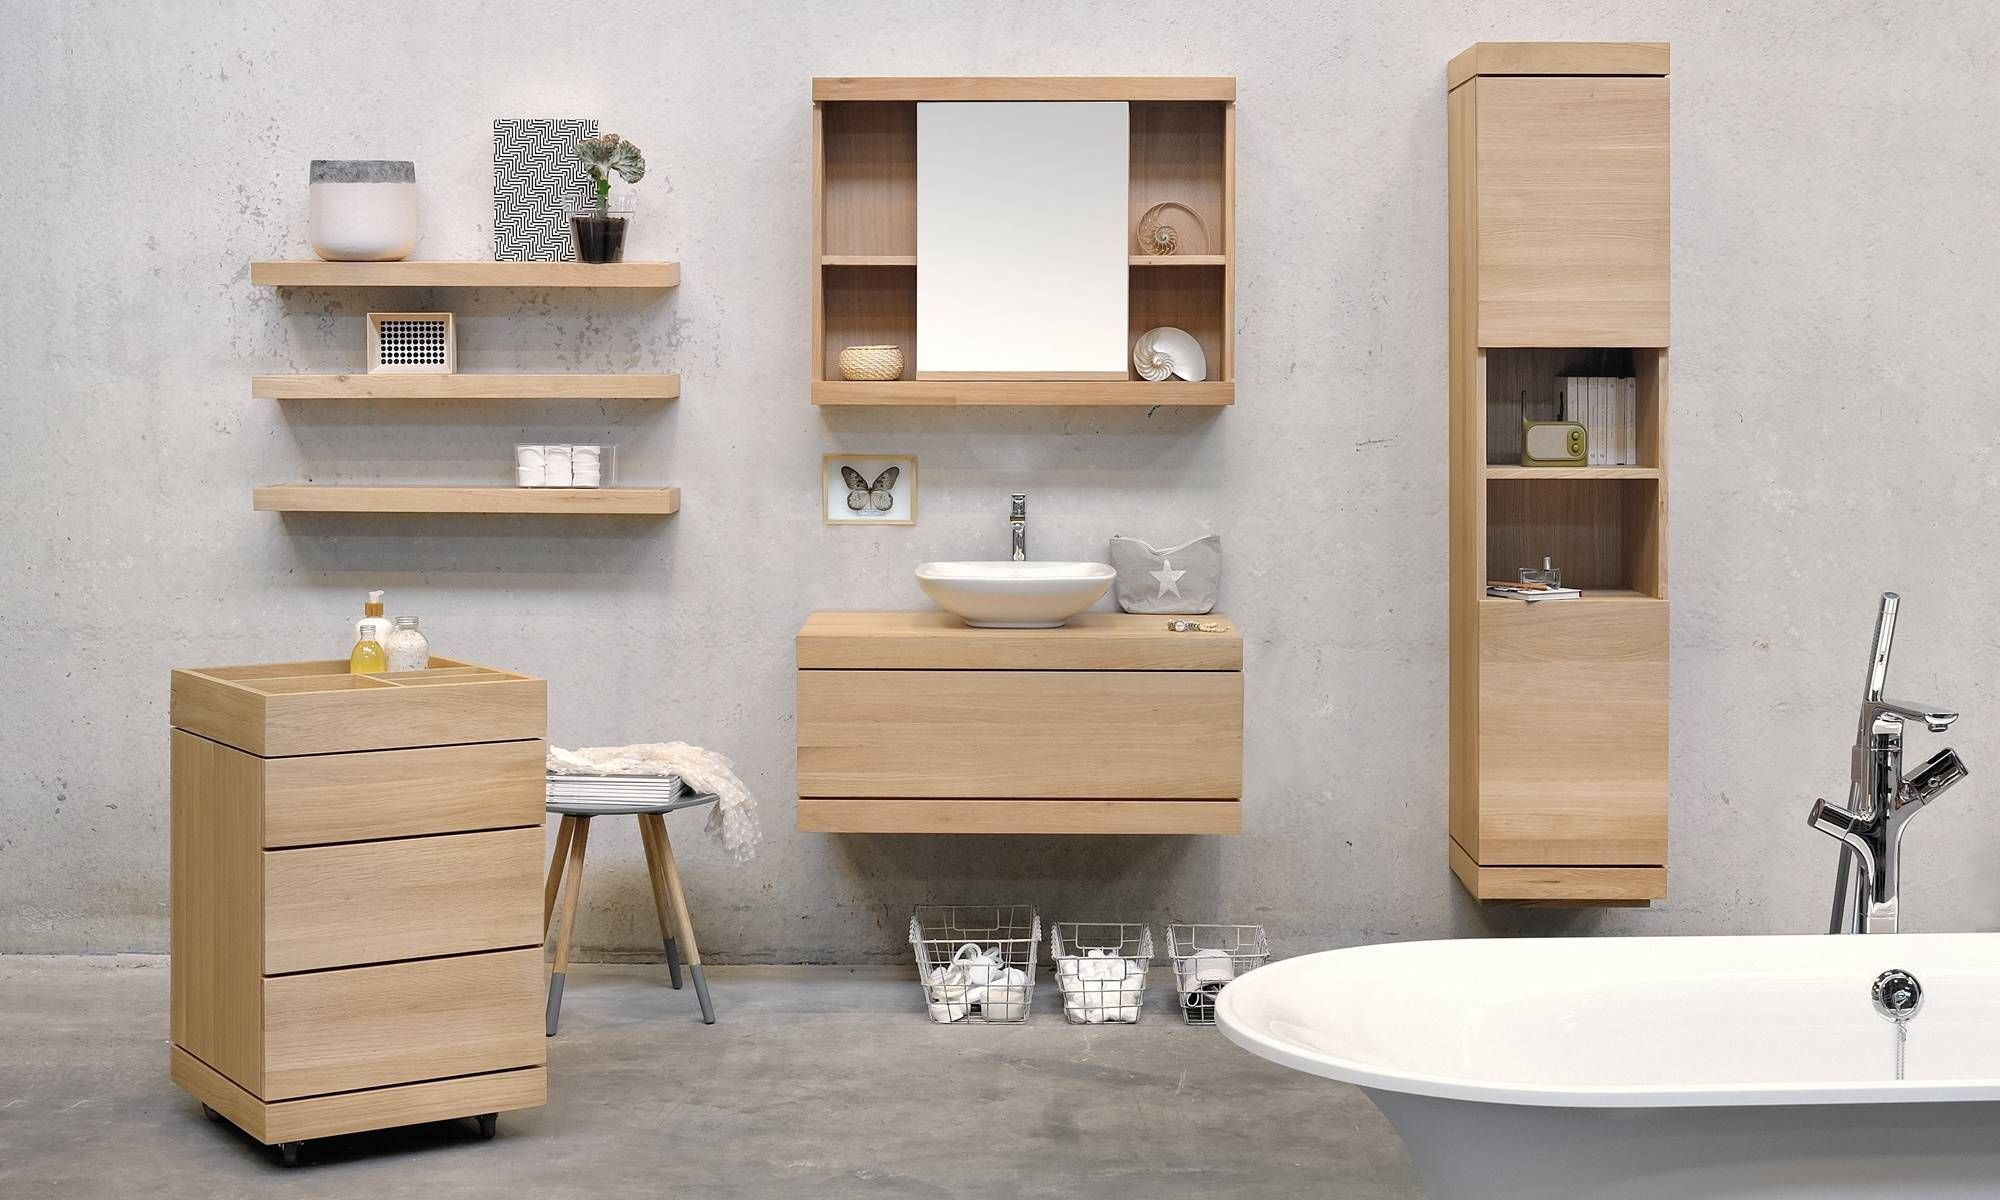 Ethnicraft Bathroom The Timeless Beauty Of Solid Wood Banyo Dekoru Banyo Dolaplari Dolaplar